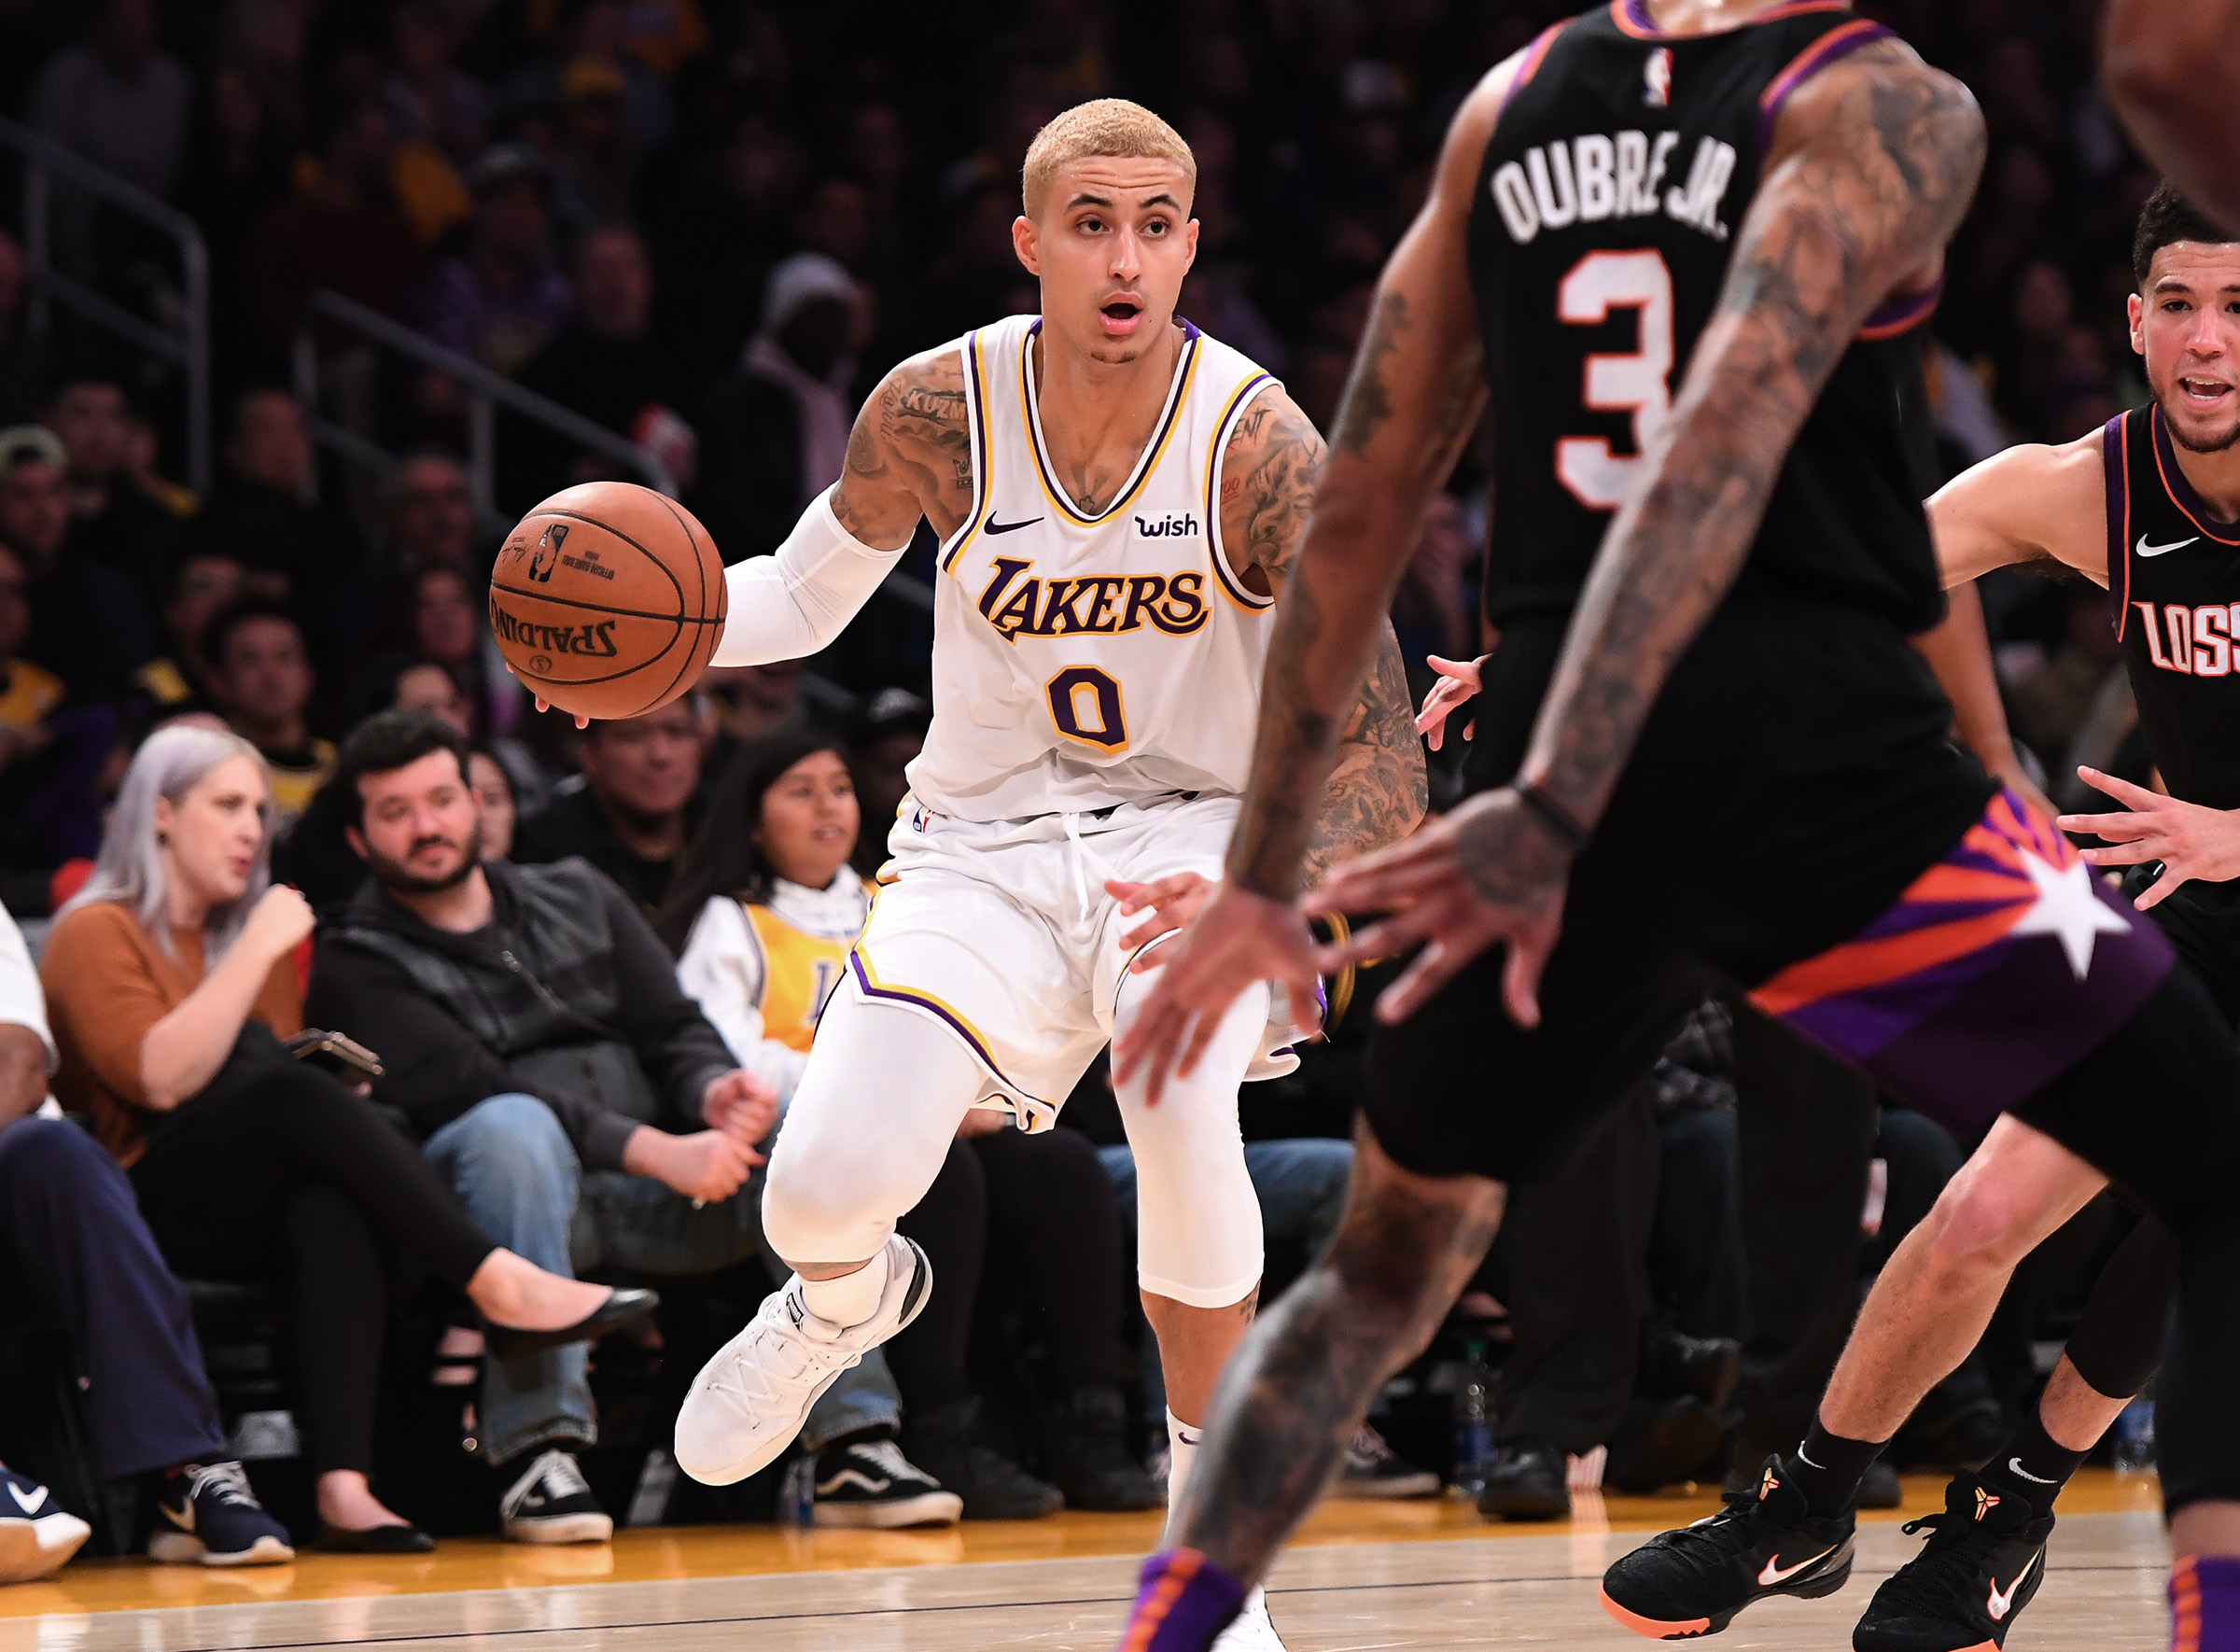 Kyle Kuzma gets roasted by fan during game for new blonde hair (Video)